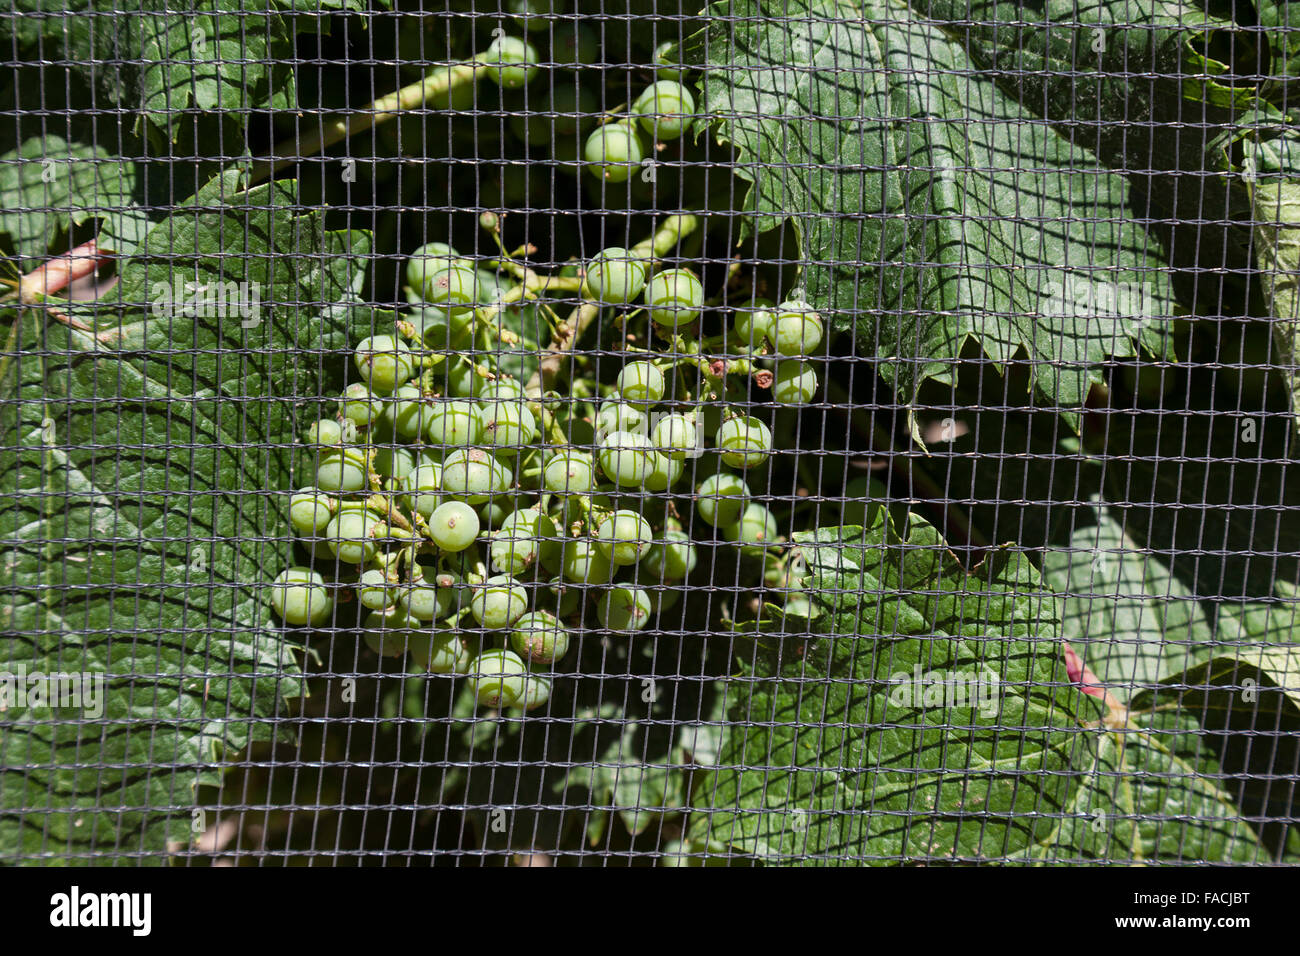 Hail Net Stock Photos Hail Net Stock Images Alamy